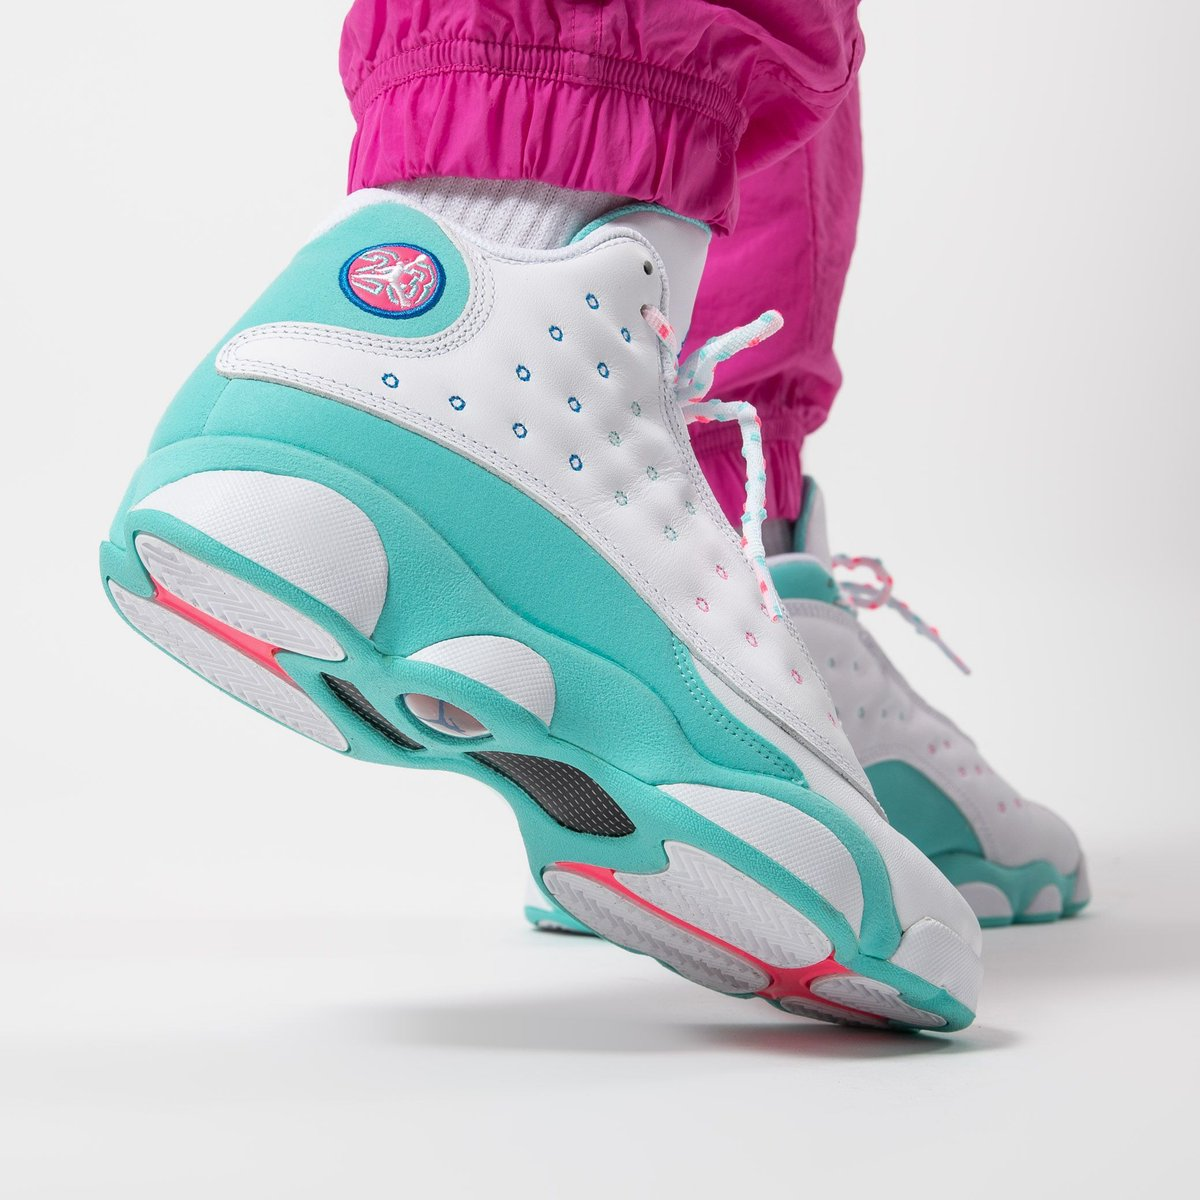 Titolo On Twitter Just In Air Jordan Retro 13 Gs Aurora Green Digital Pink Are Available Online Hurry Up Https T Co Blzn9jn957 Us 4 5y 36 5 Us 7y 40 439358 100 Wmns Icon Clash